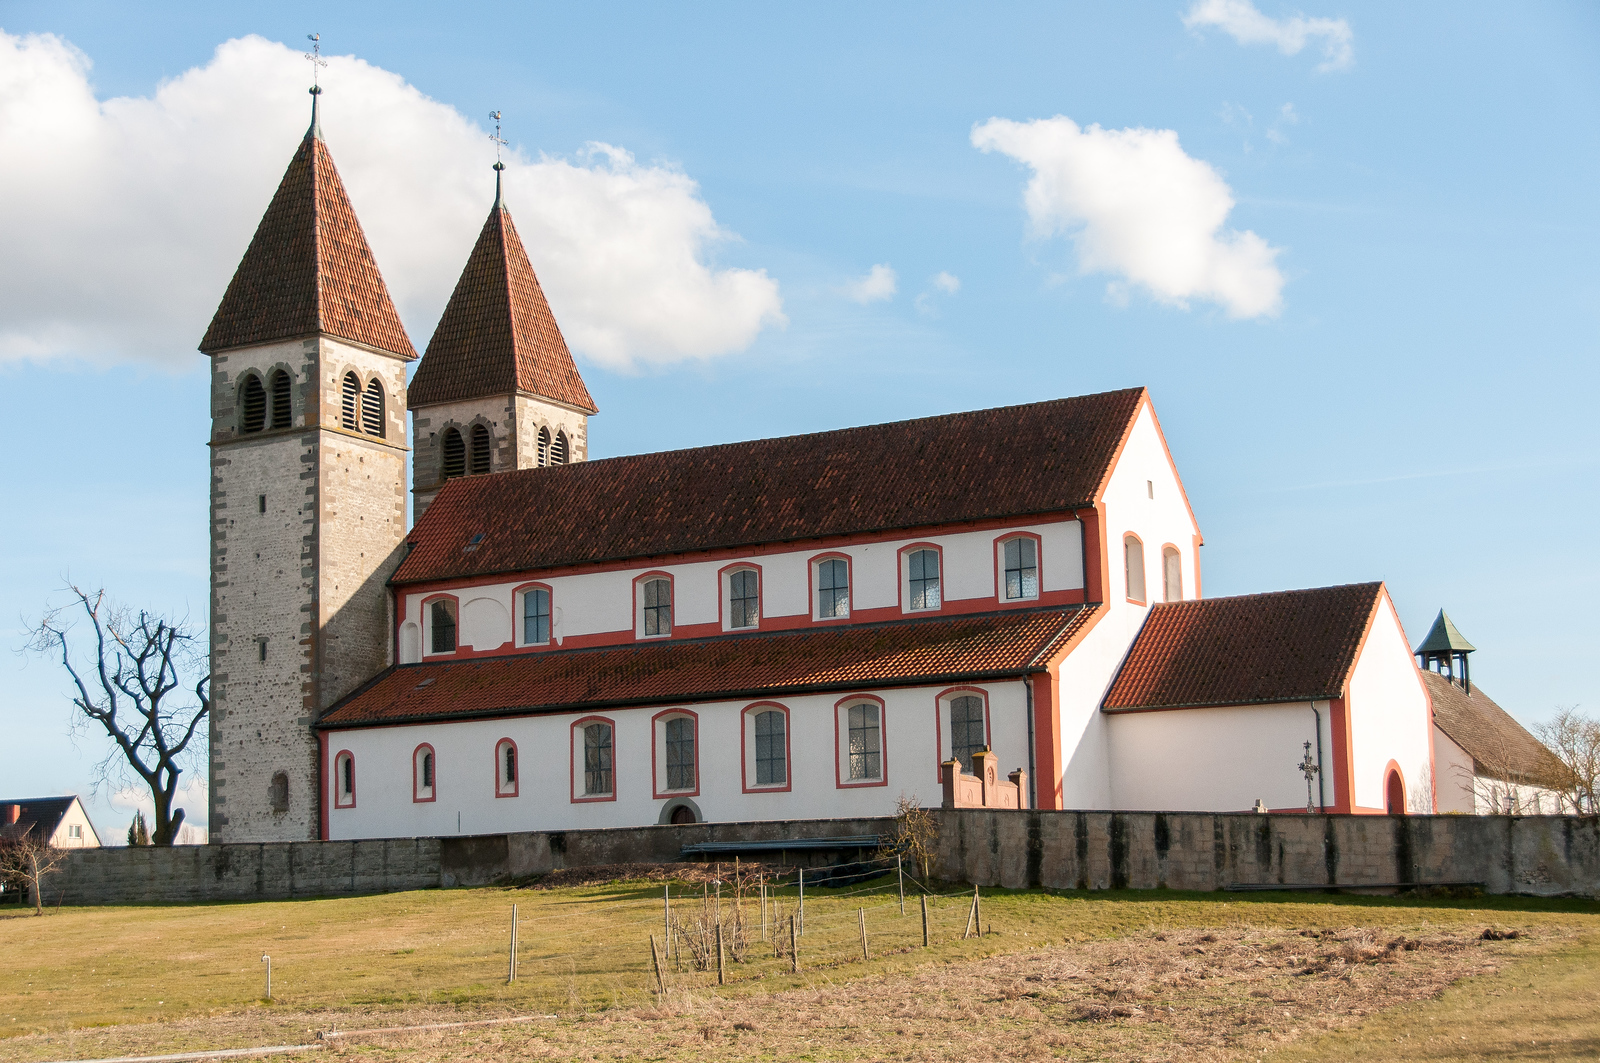 Isolated shot of St. George's Church in Reichenau, Germany